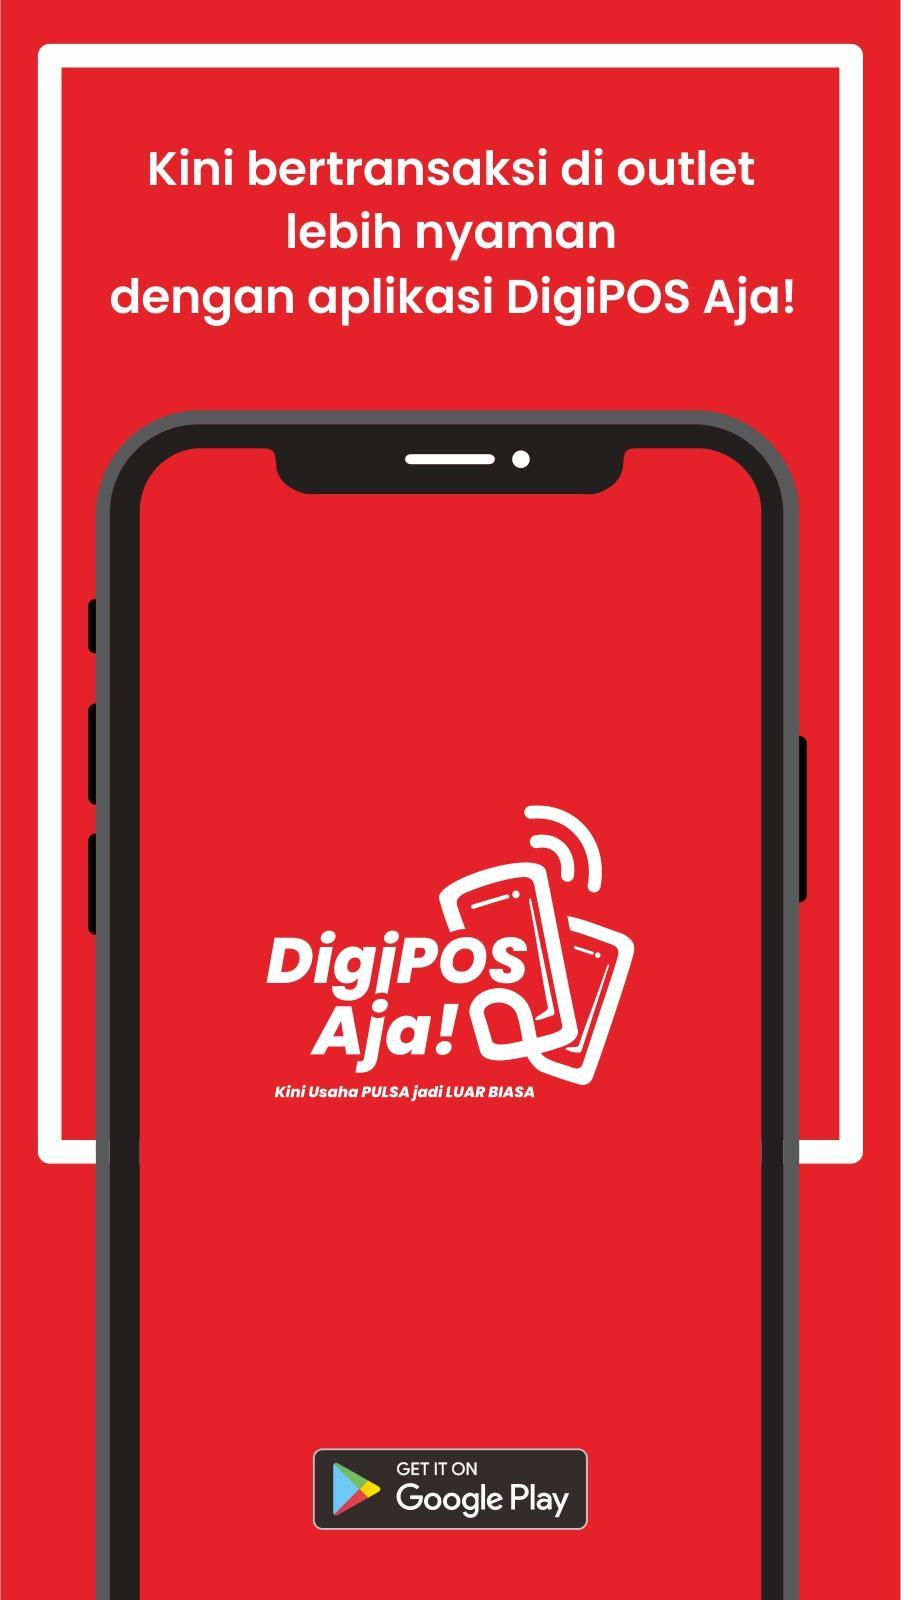 Digipos Aja Pulsa Data Digital Telkomsel For Android Apk Download